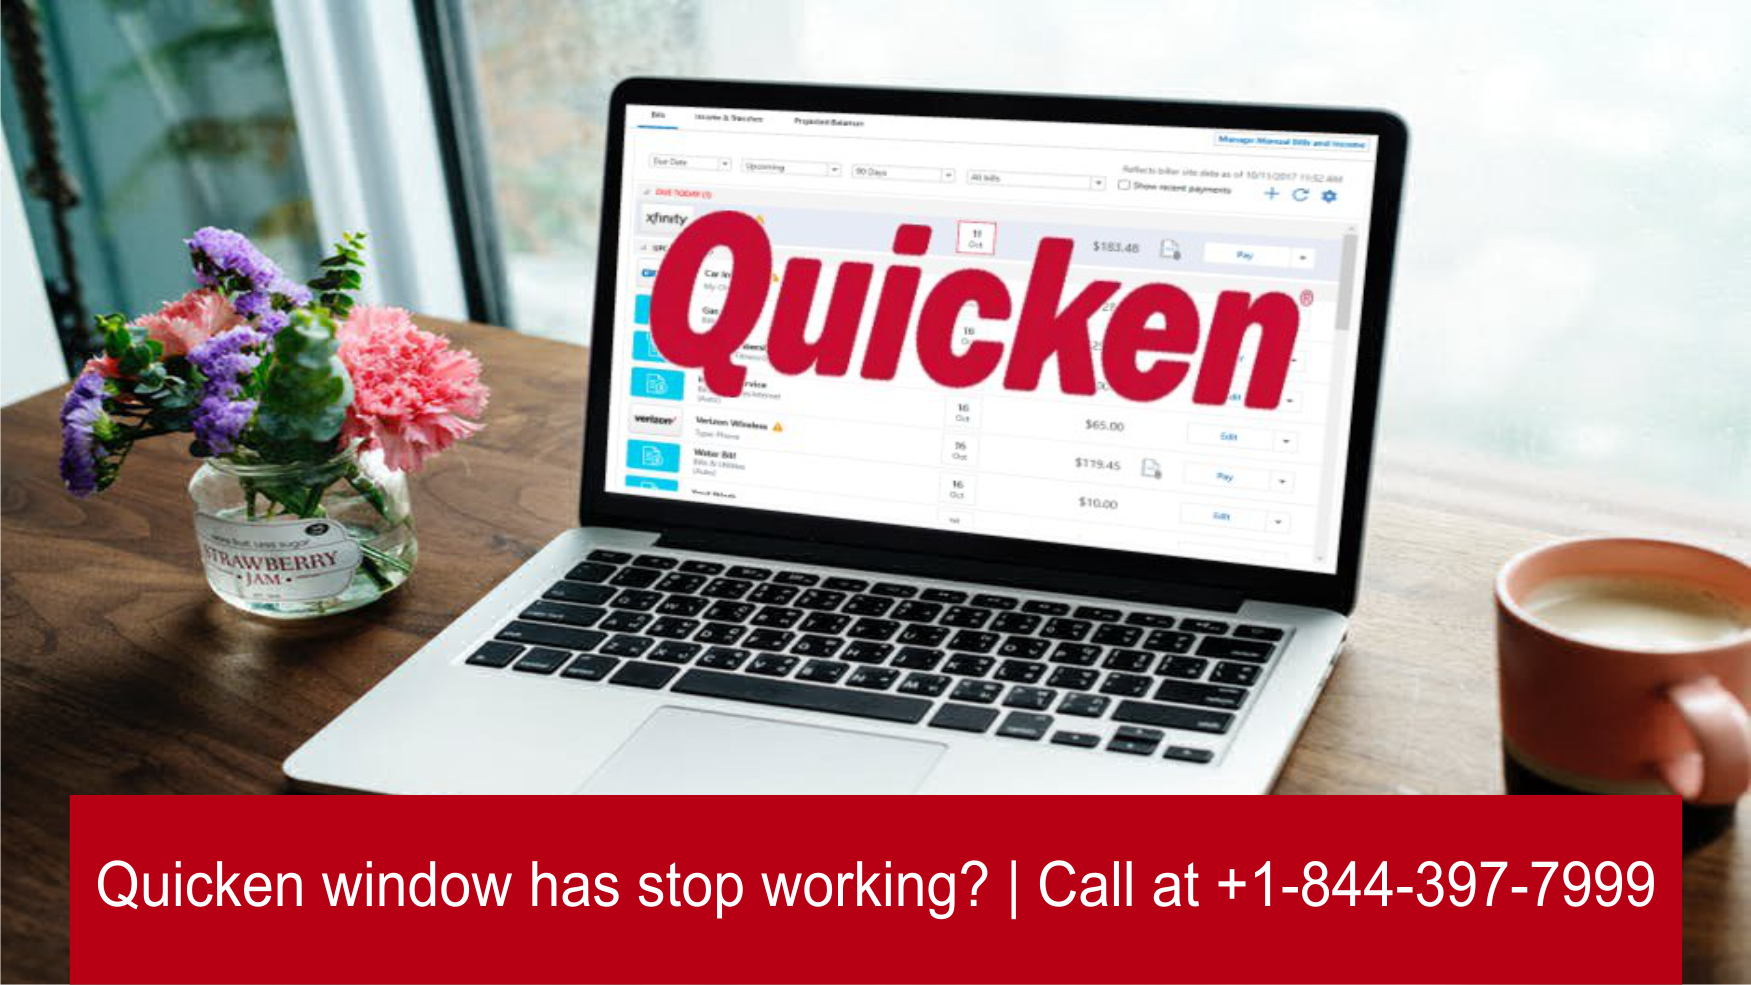 [Fixed] Quicken window has stop working? | Call at +1-800-986-6752